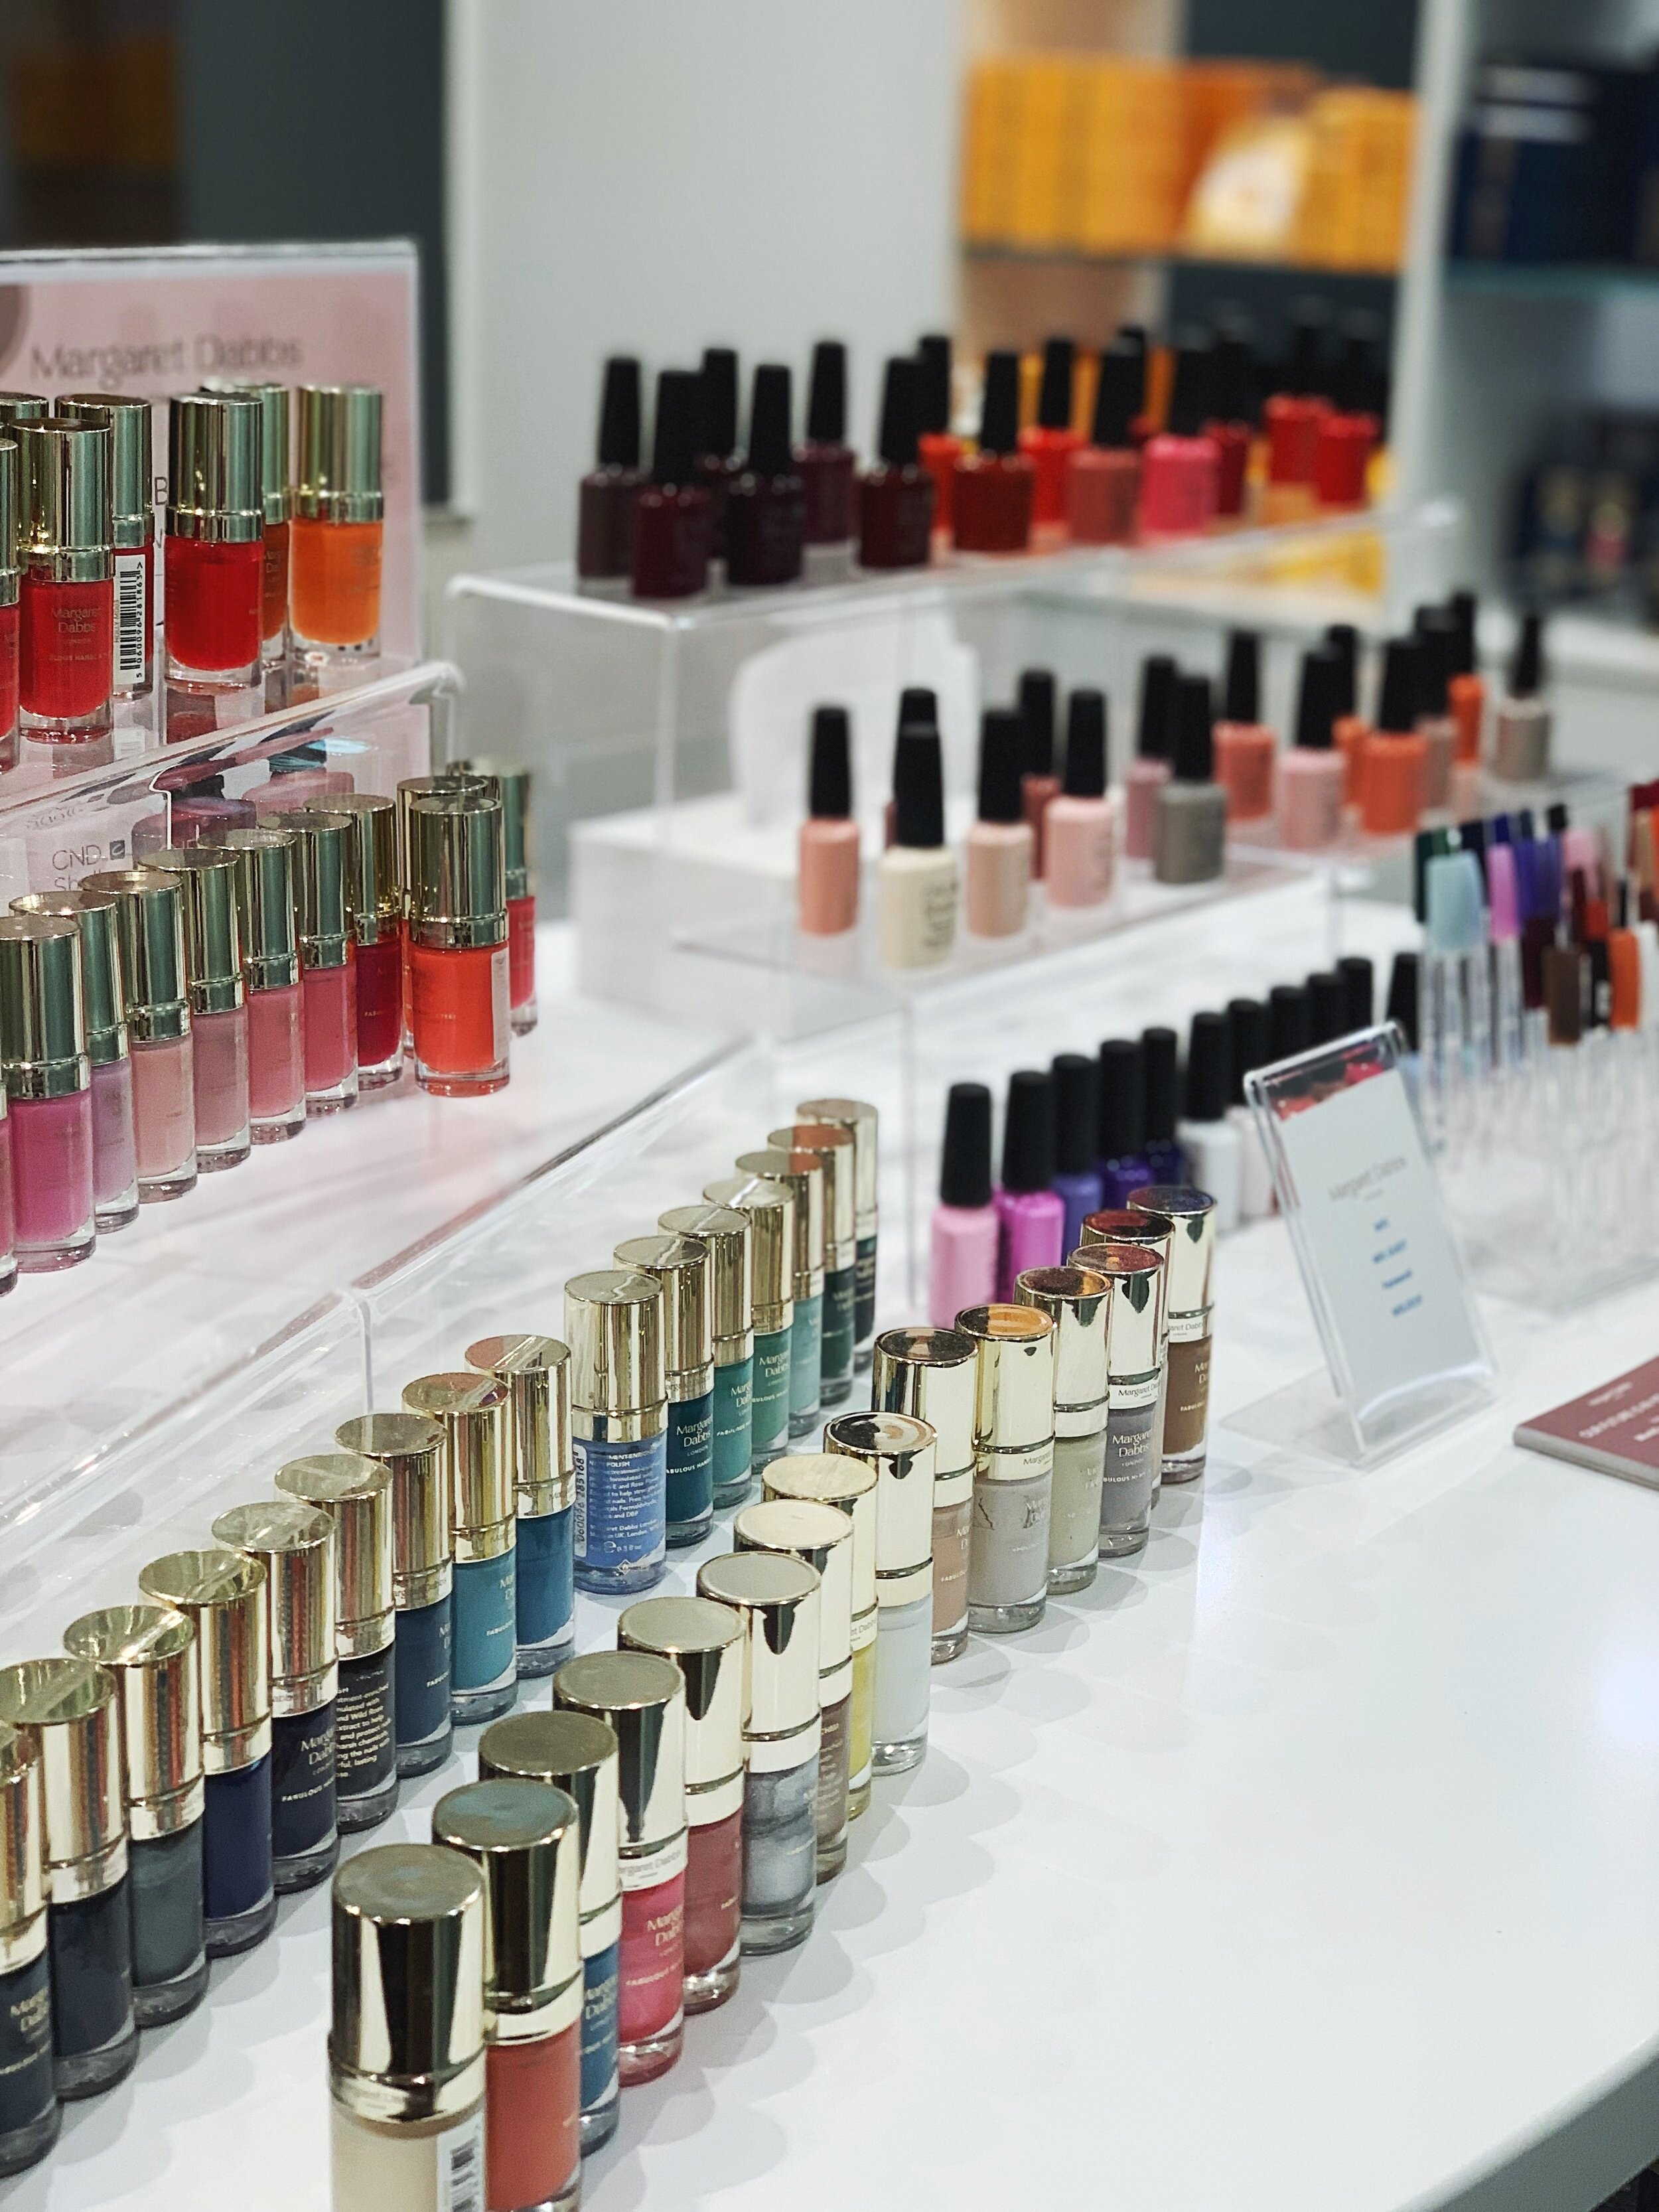 DECISIONS DECISIONS - Choose from a wide range of beautiful nail polish shades